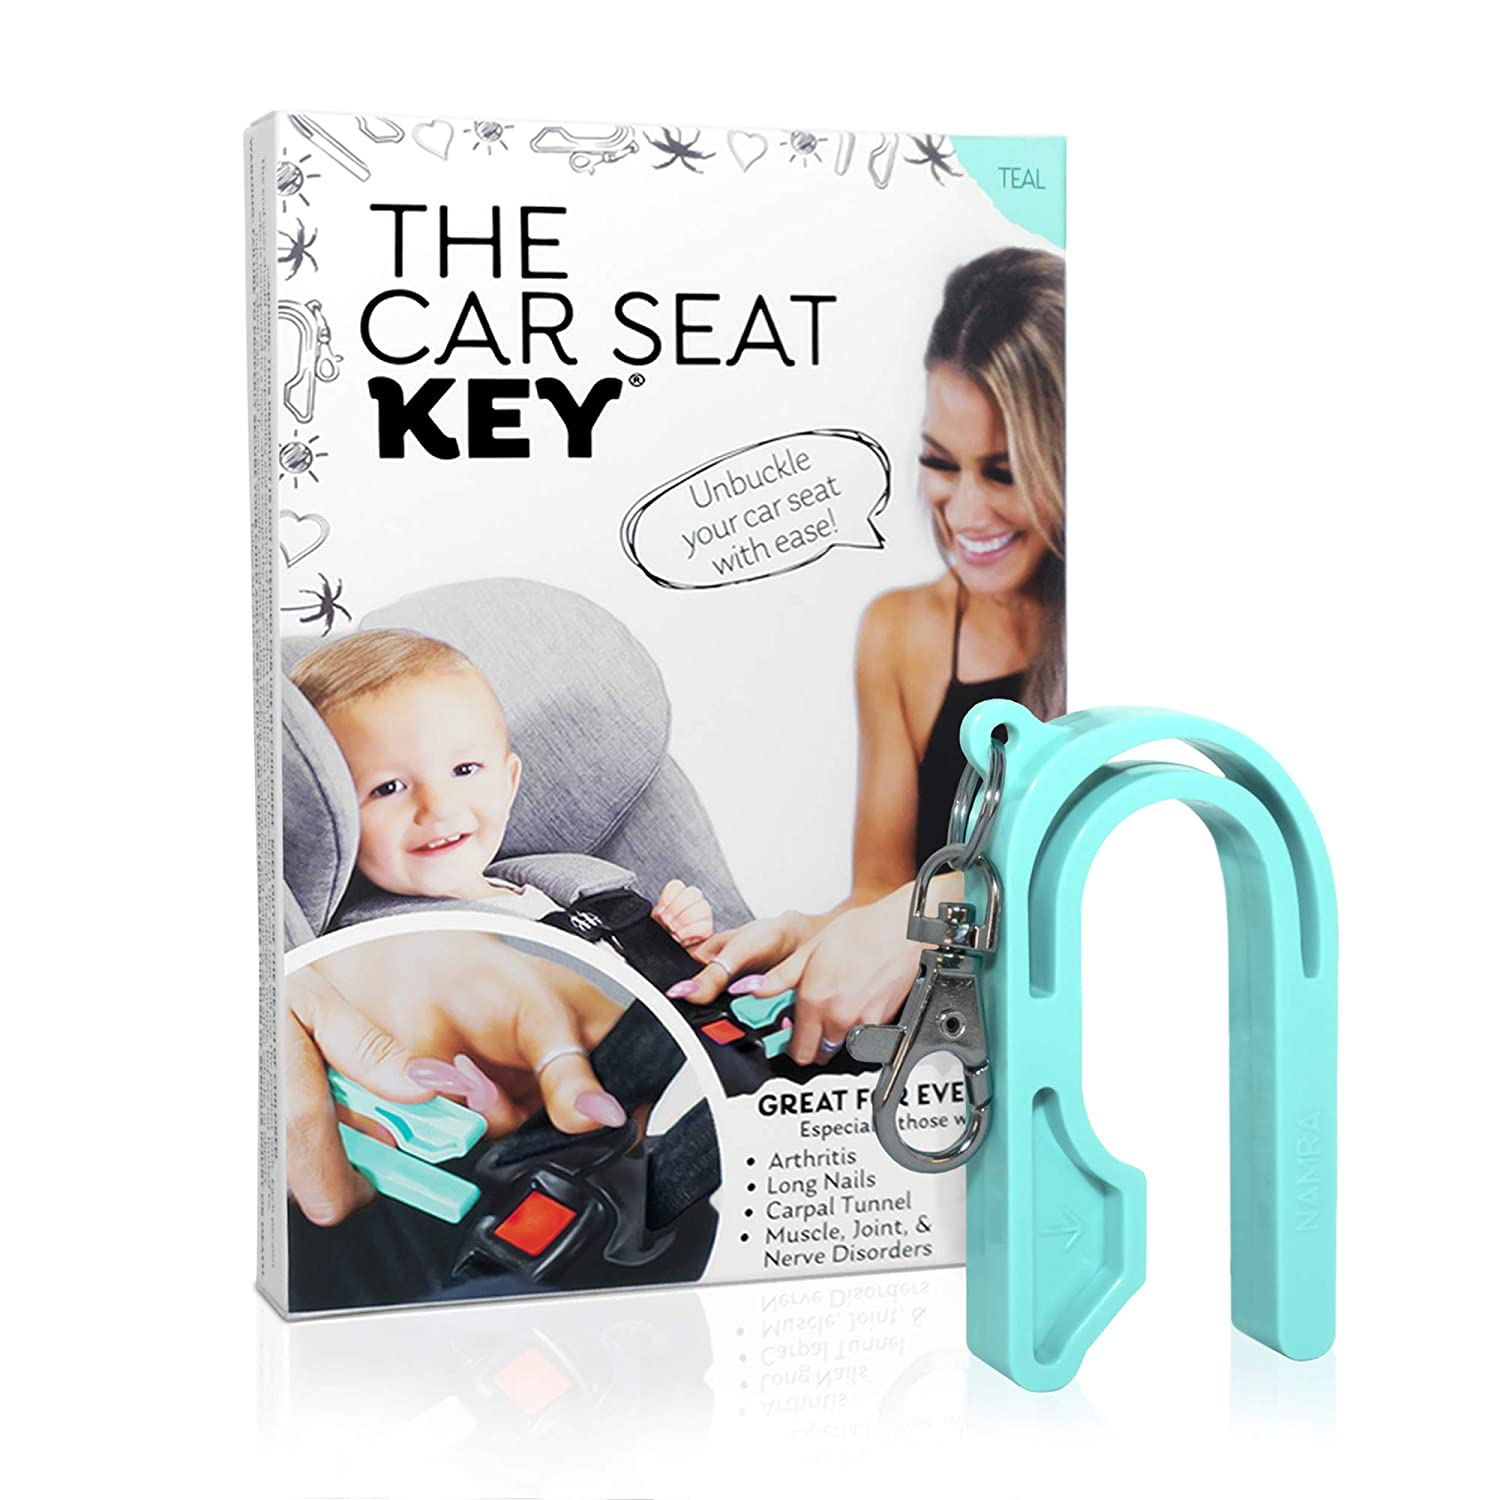 The Car Seat Key Teal 2019 New Easy Buckle Tool Helps Kids and Adults to Unbuckle Easy Car Seat Unbuckle